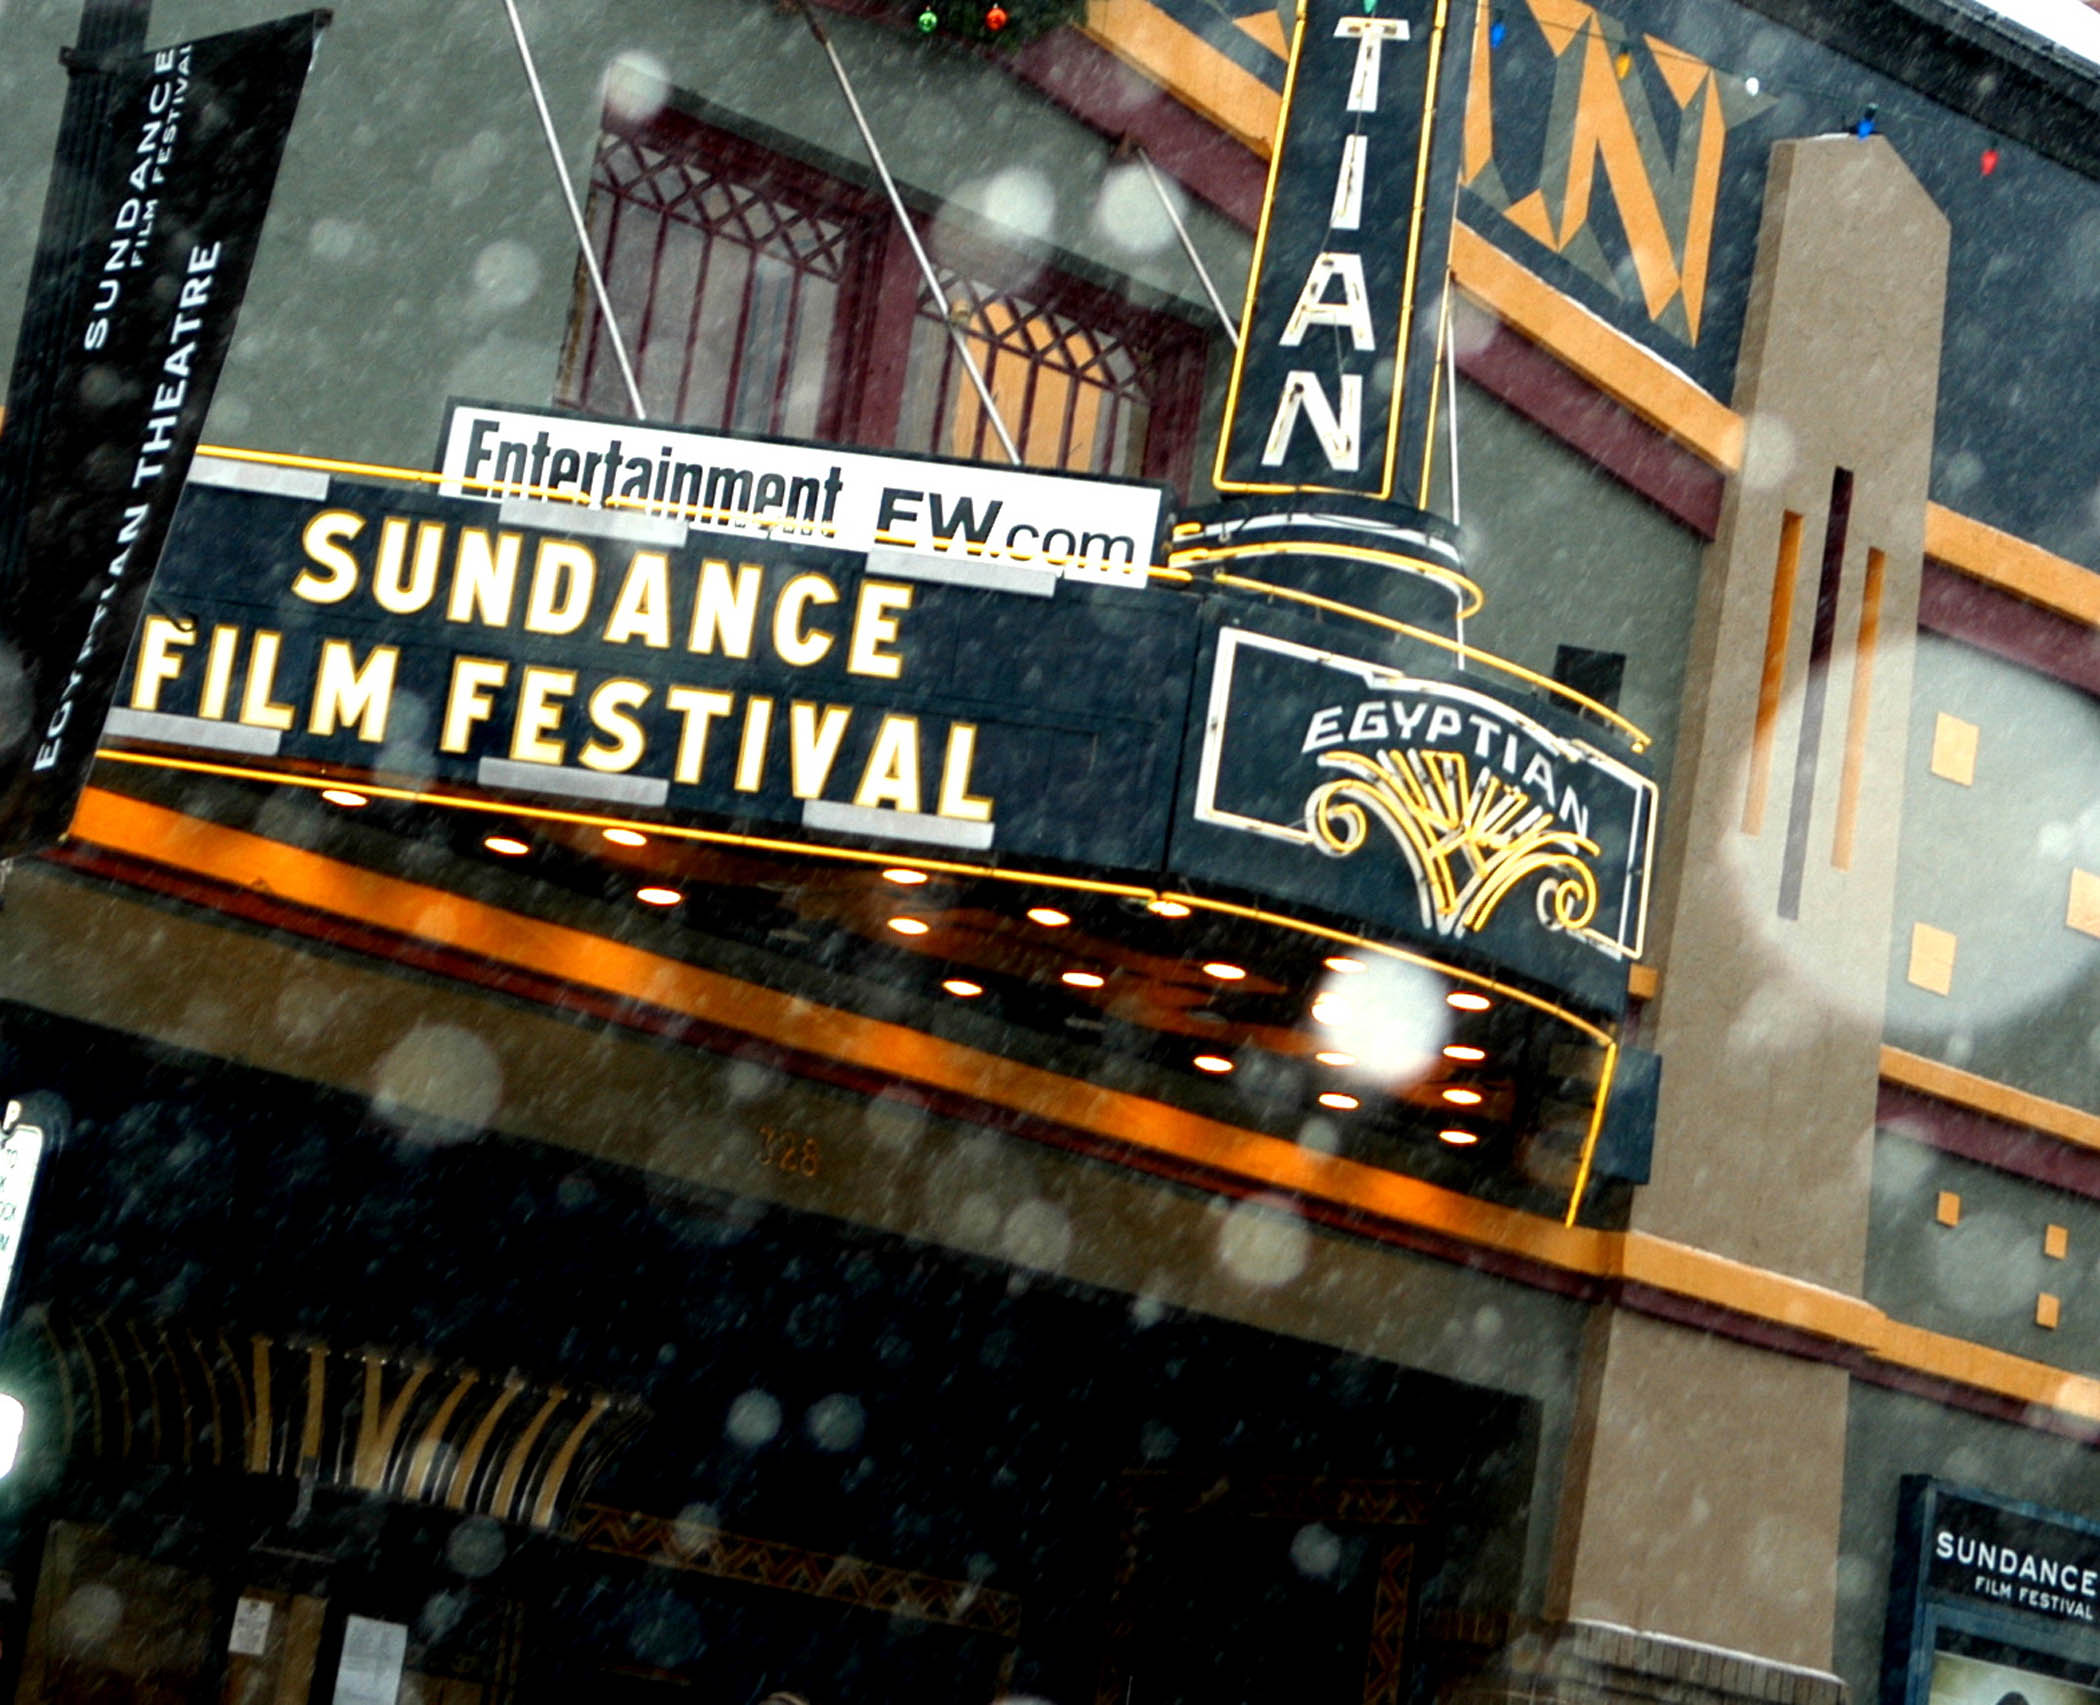 Why Sundance, America's largest independent film festival, matters